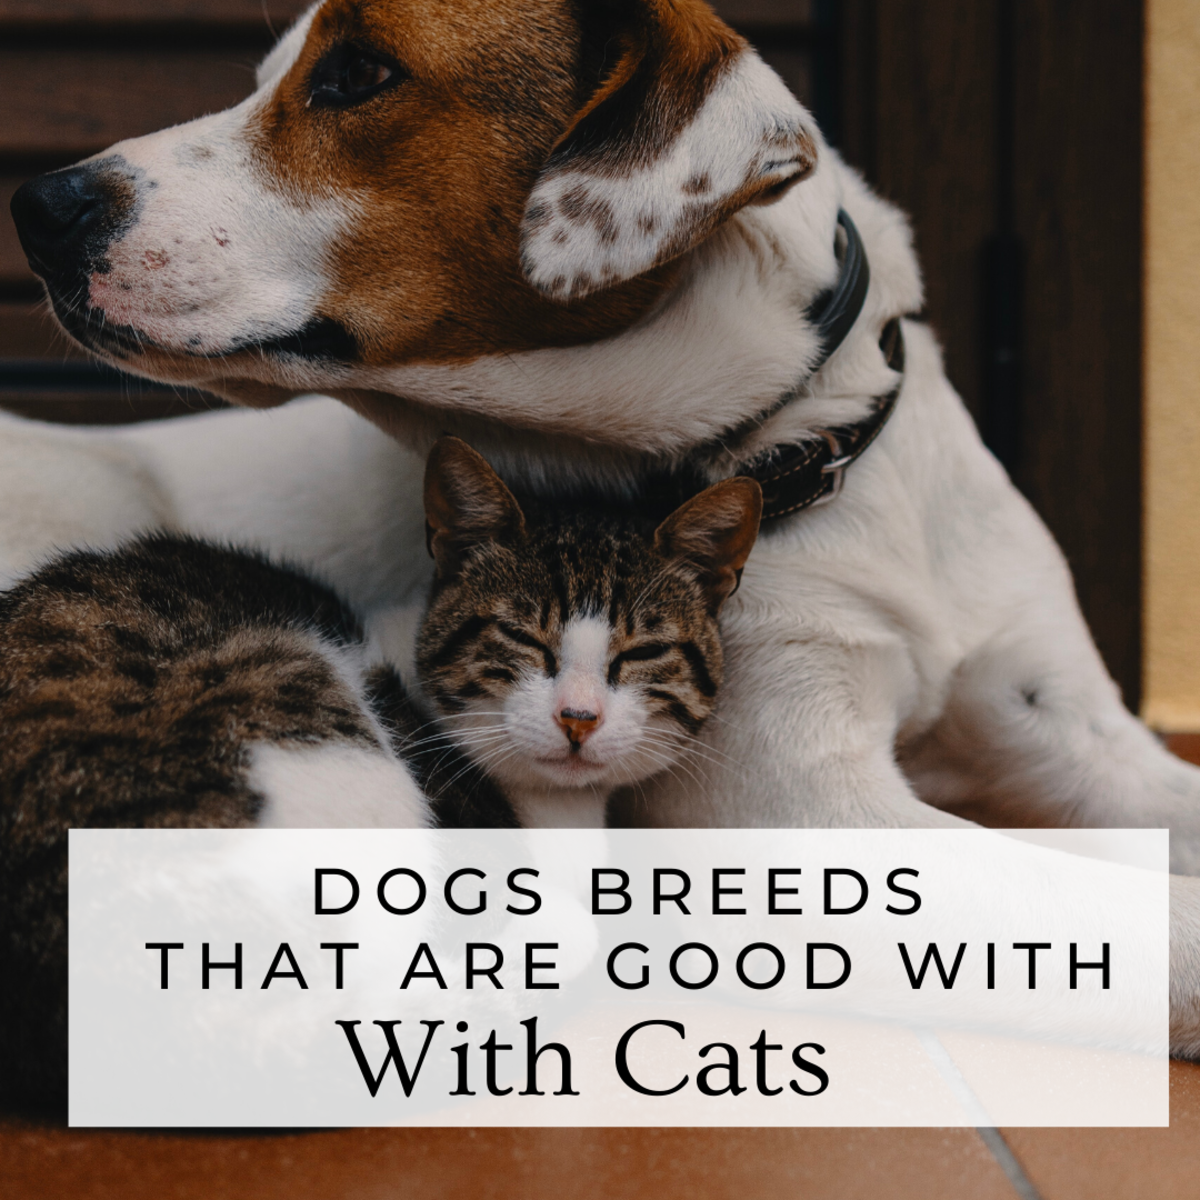 Which Dogs Breeds Like Cats?